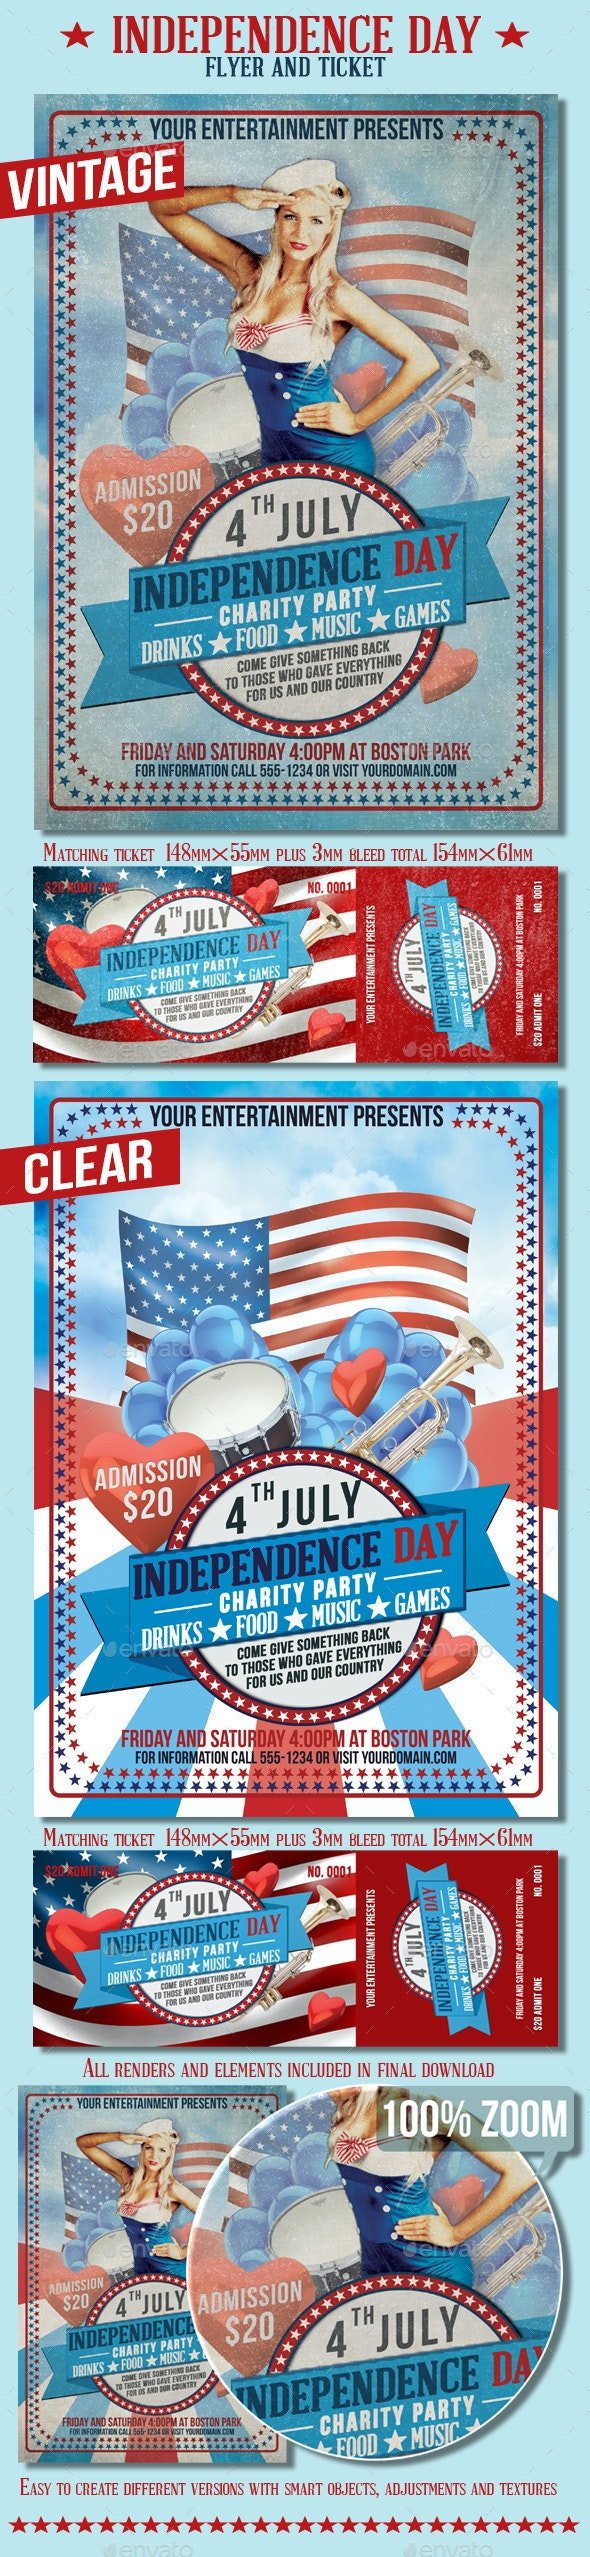 4th July Independence Day Flyer And Ticket - Events Flyers